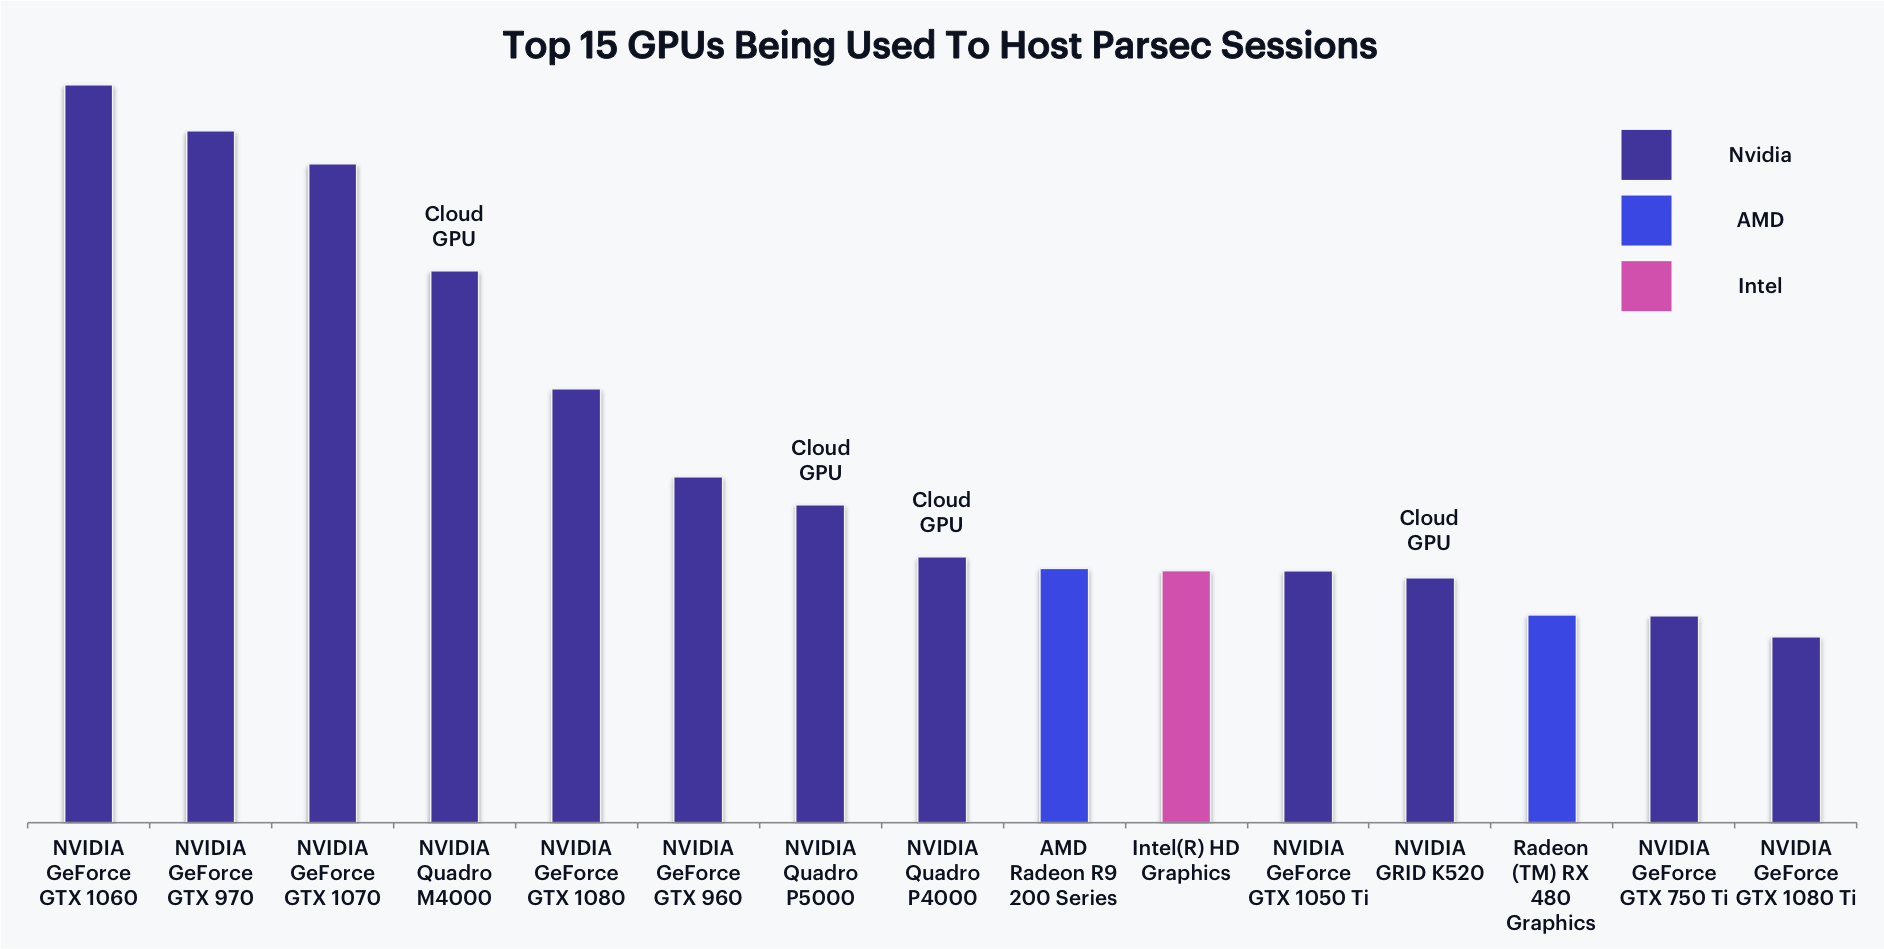 The Most Popular GPUs In Parsec Game Streaming Sessions